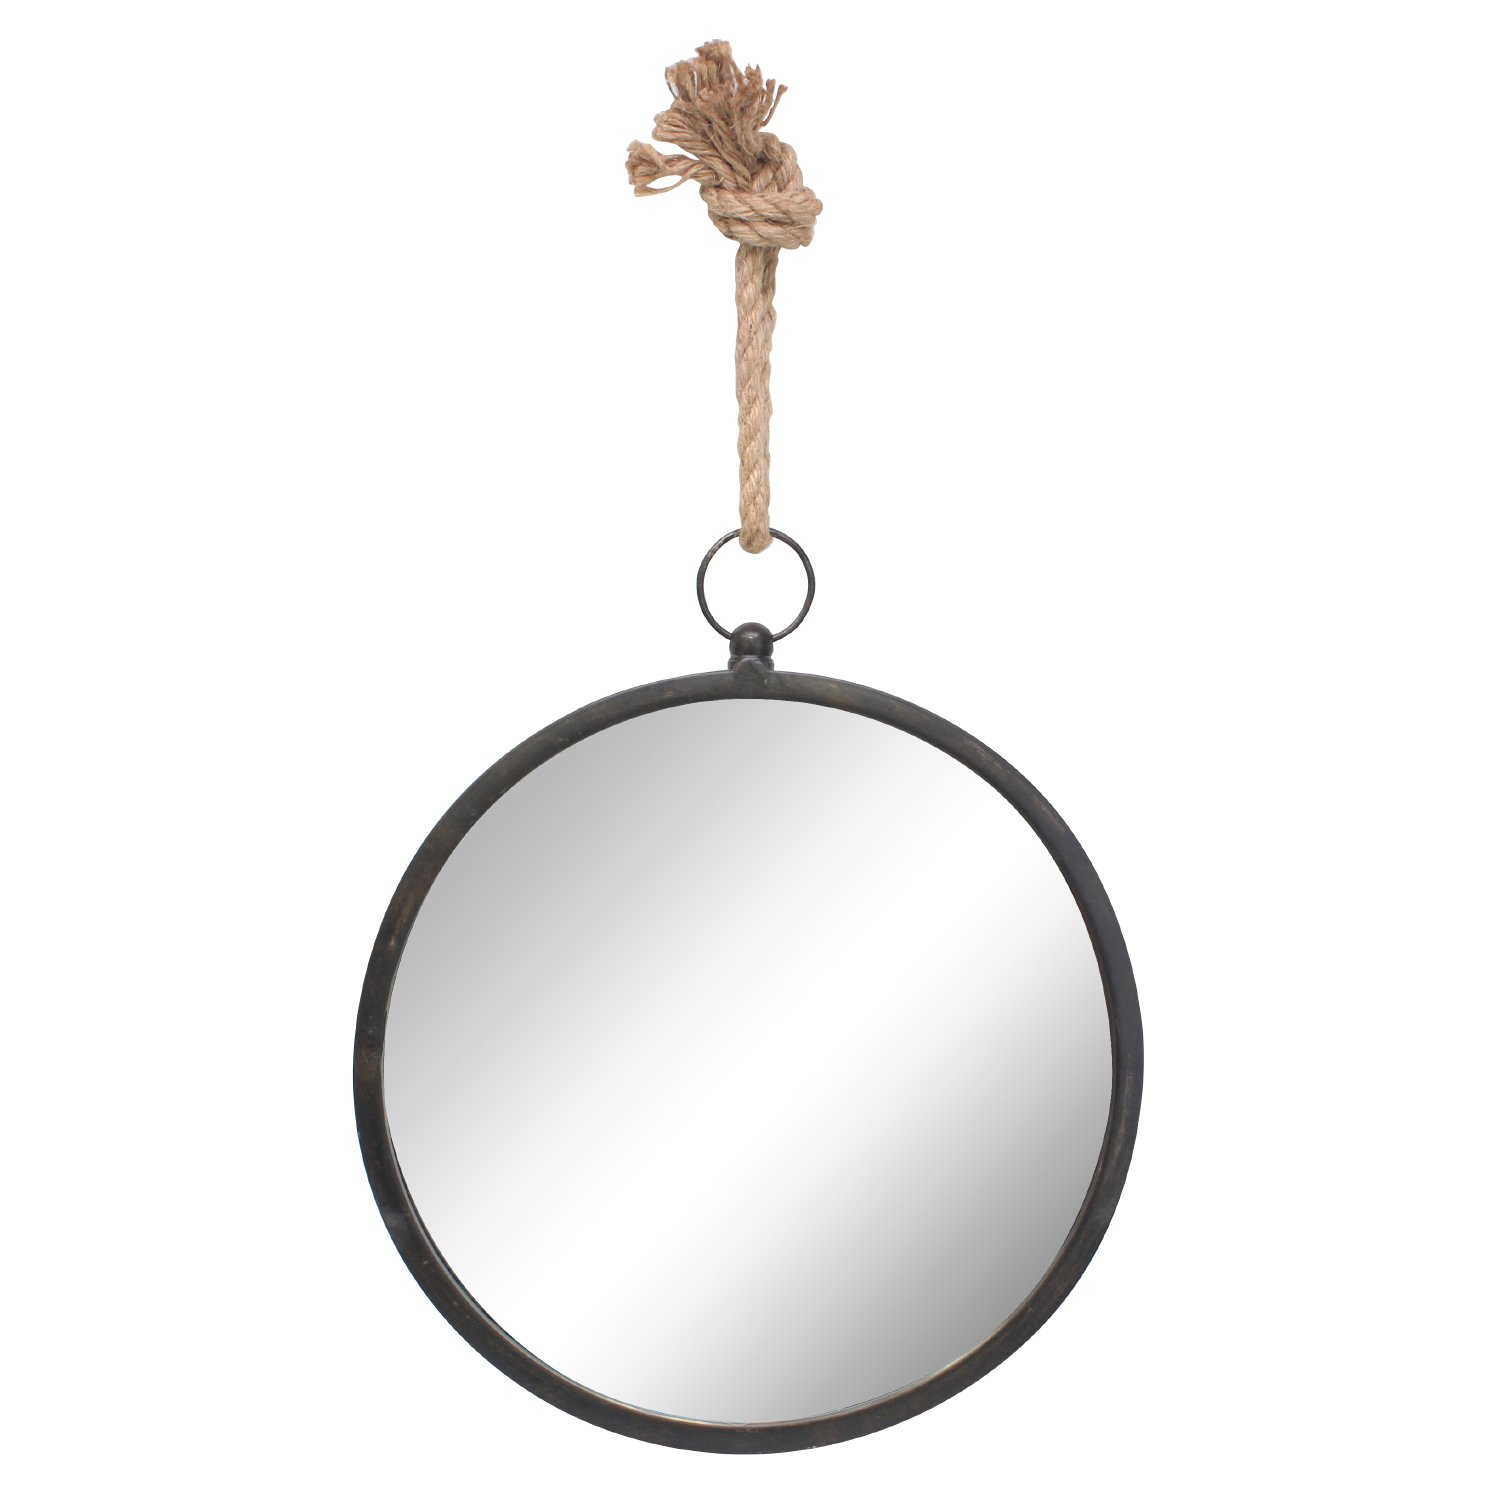 Stonebriar Round Decorative Mirror with Metal Frame & Rope Hanging Loop for Wall, Nautical Home Décor, Medium